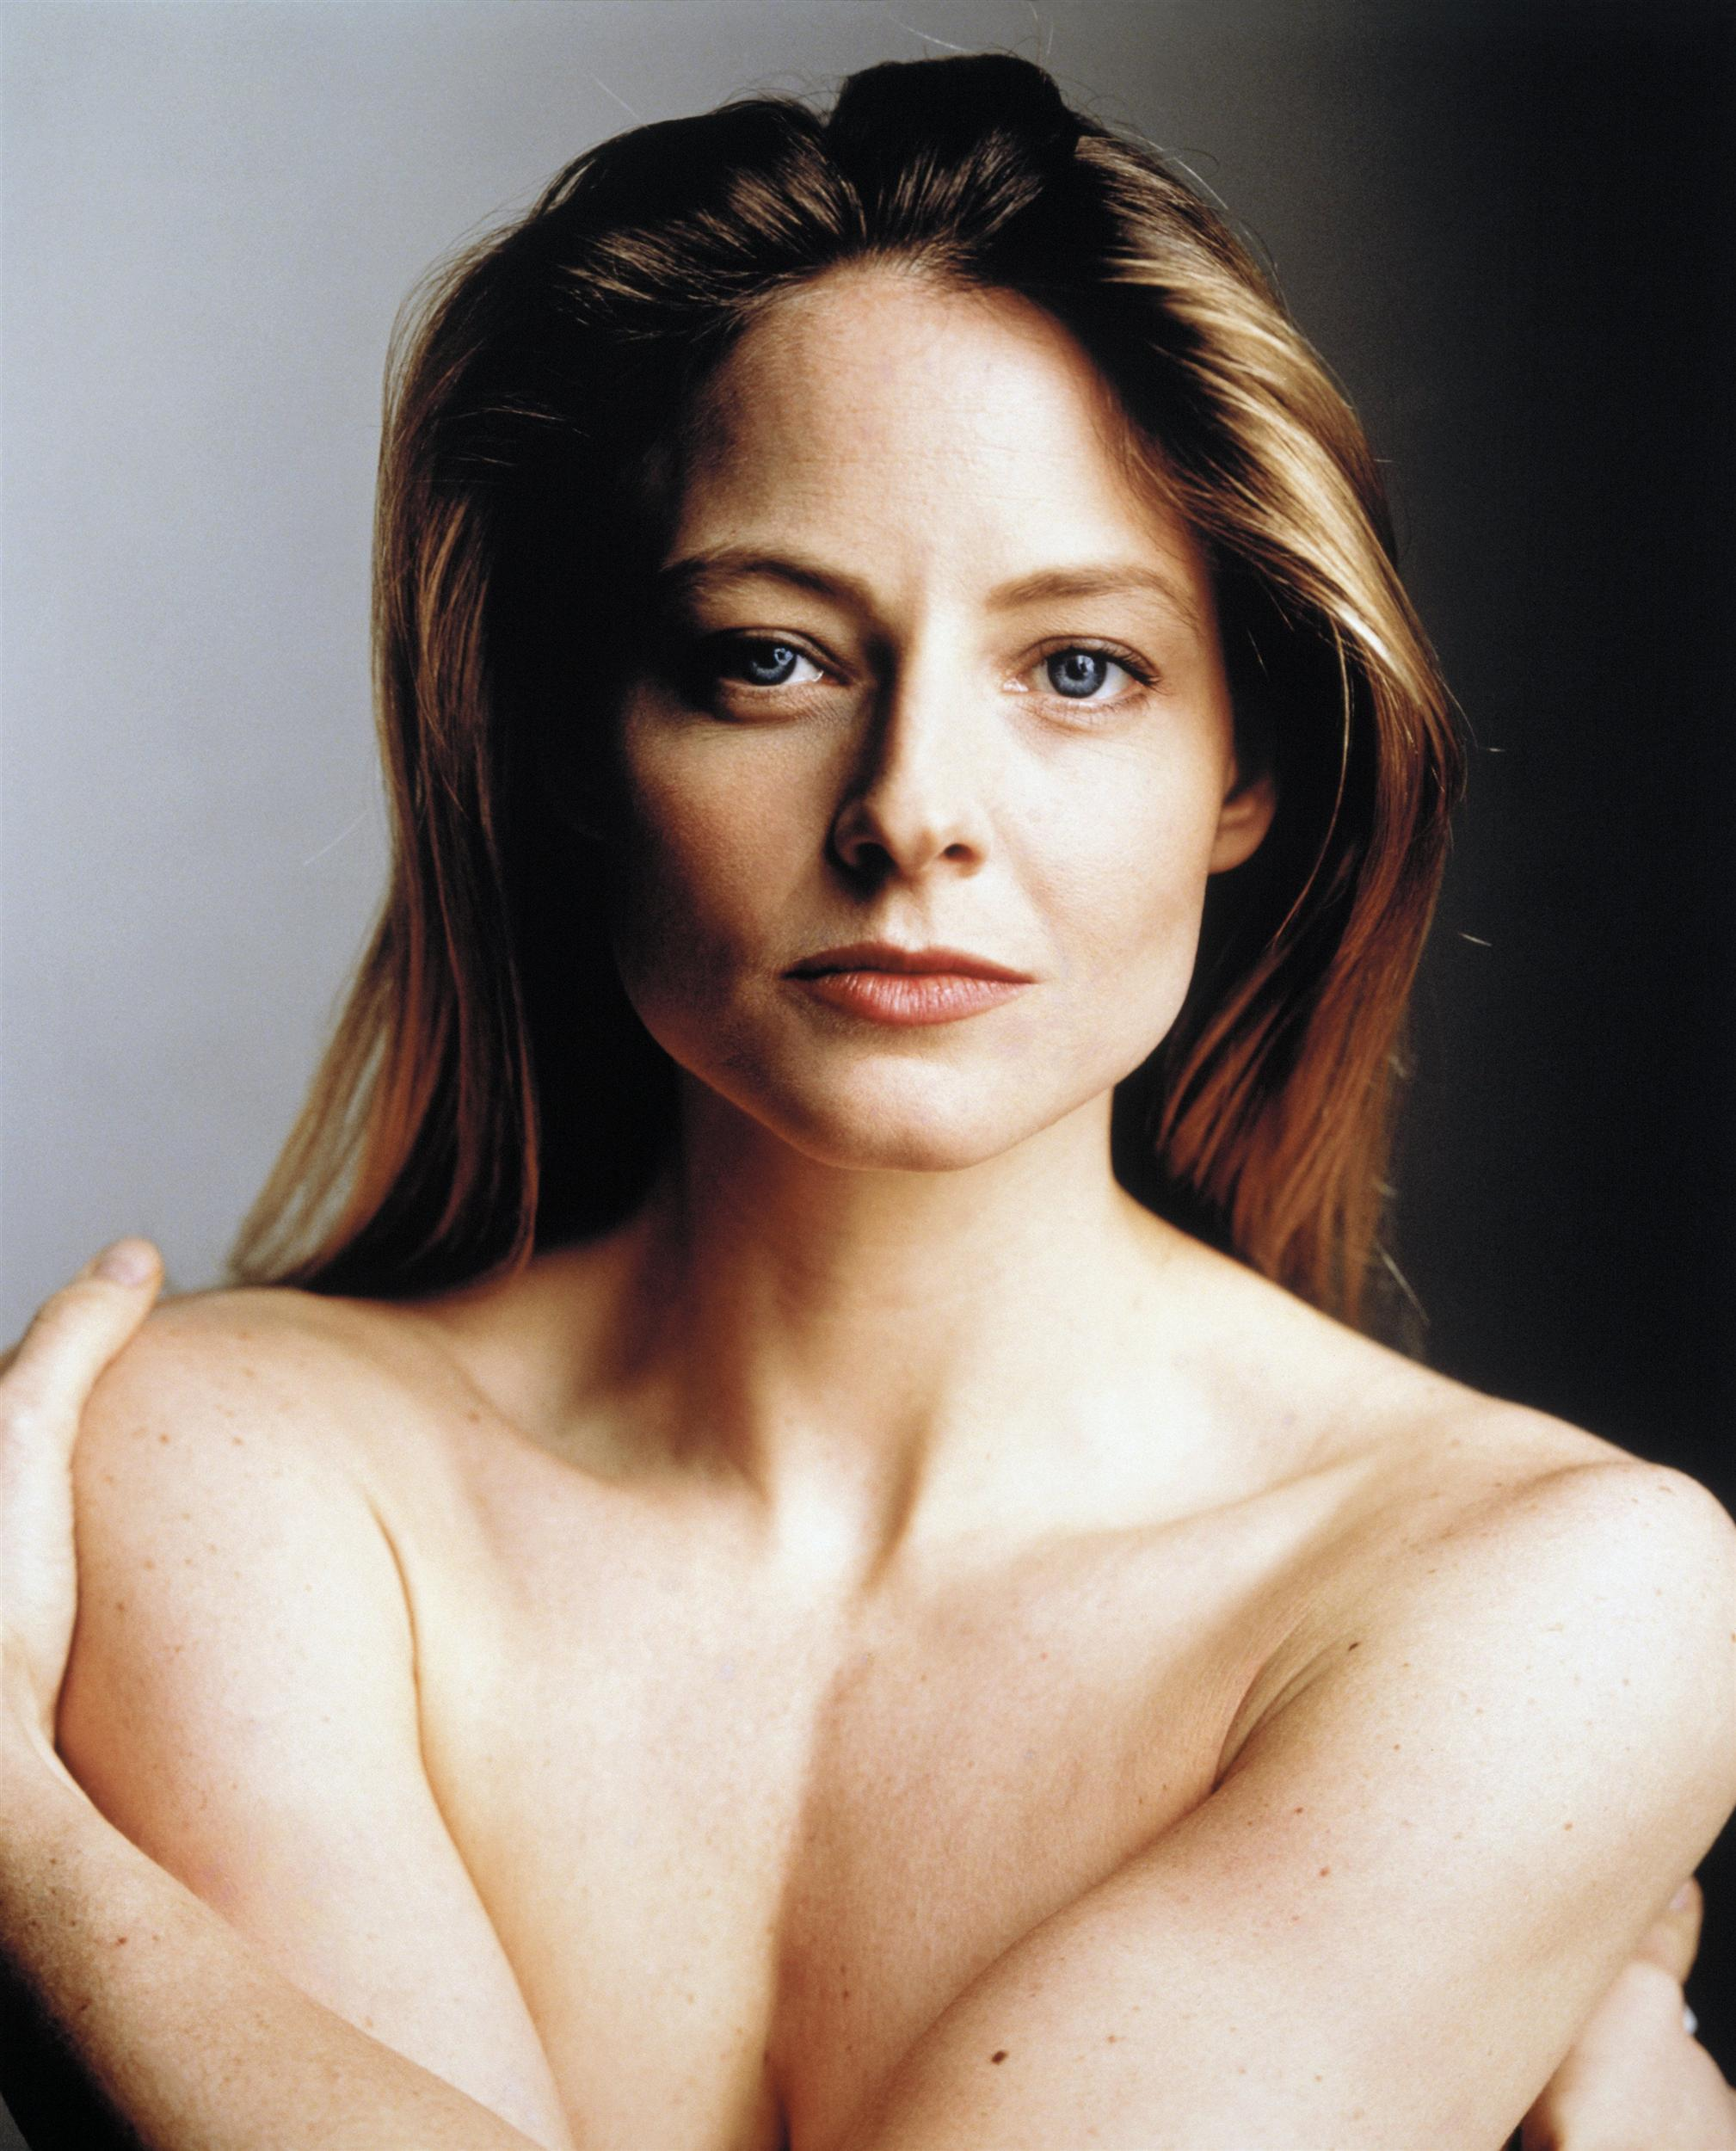 2018x2500 - Jodie Foster Wallpapers 17